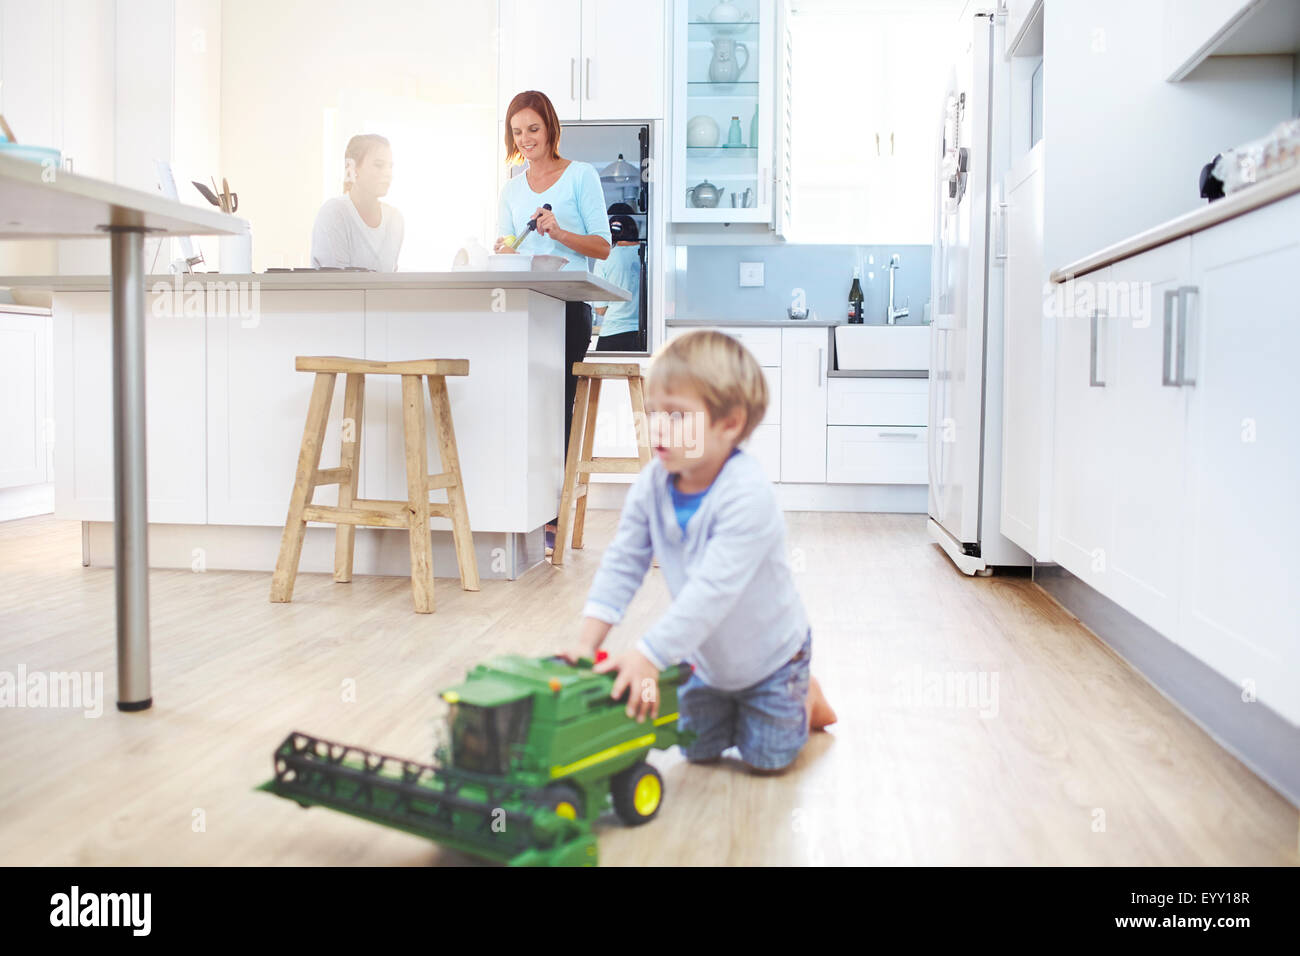 Women cooking in kitchen while boy plays with toy tractor on floor - Stock Image